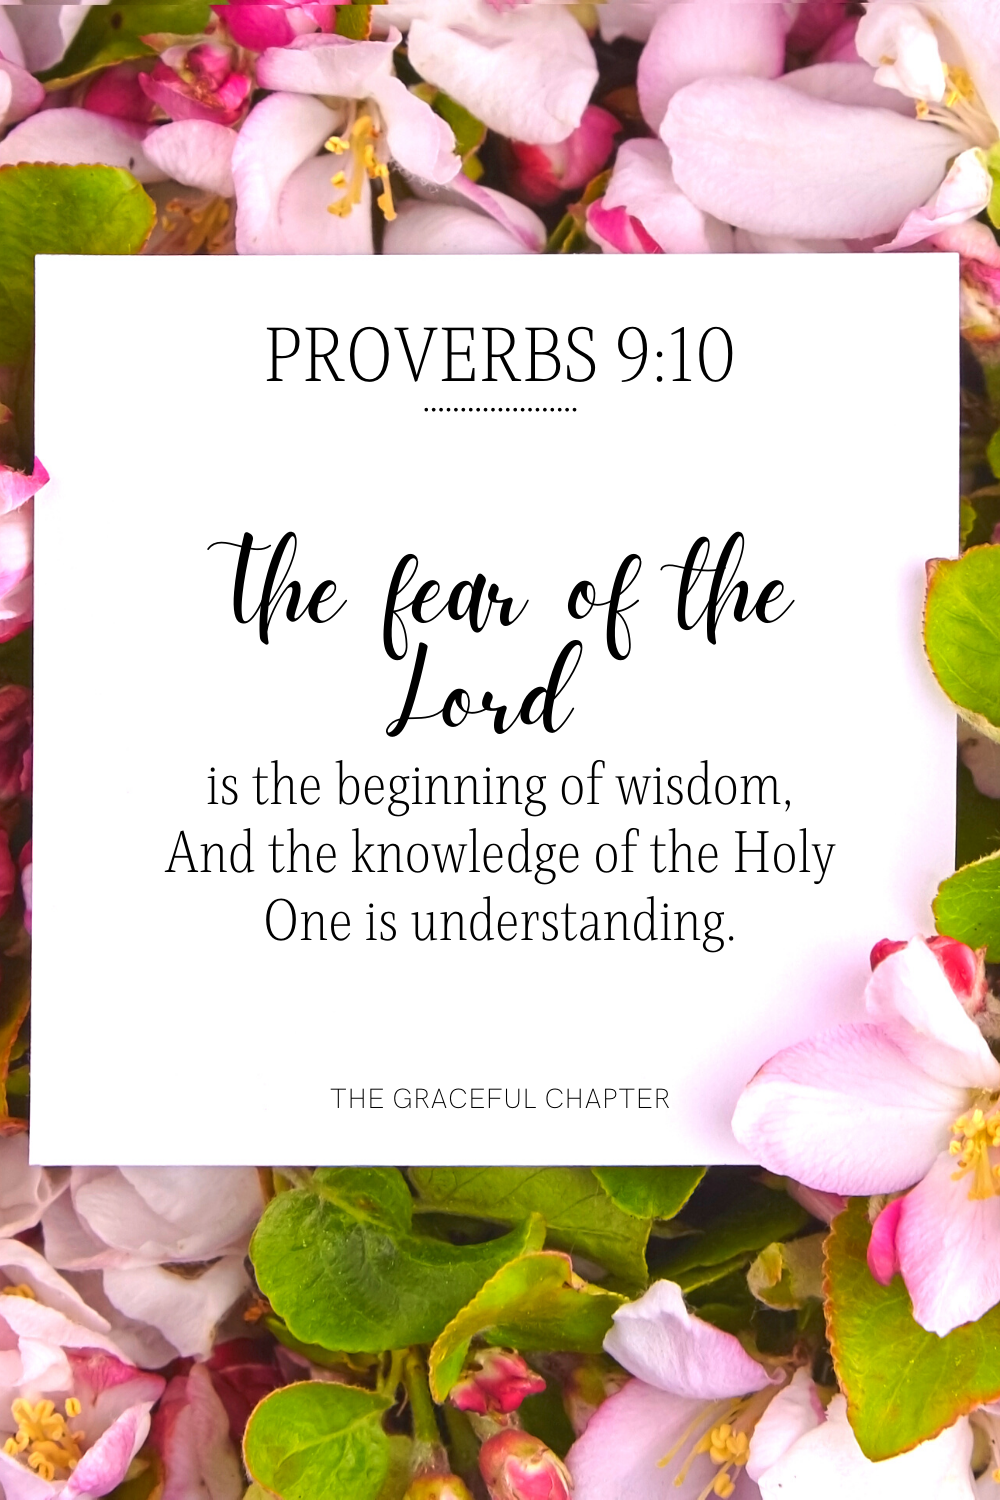 The fear of the Lord is the beginning of wisdom, And the knowledge of the Holy One is understanding. Proverbs 9:10